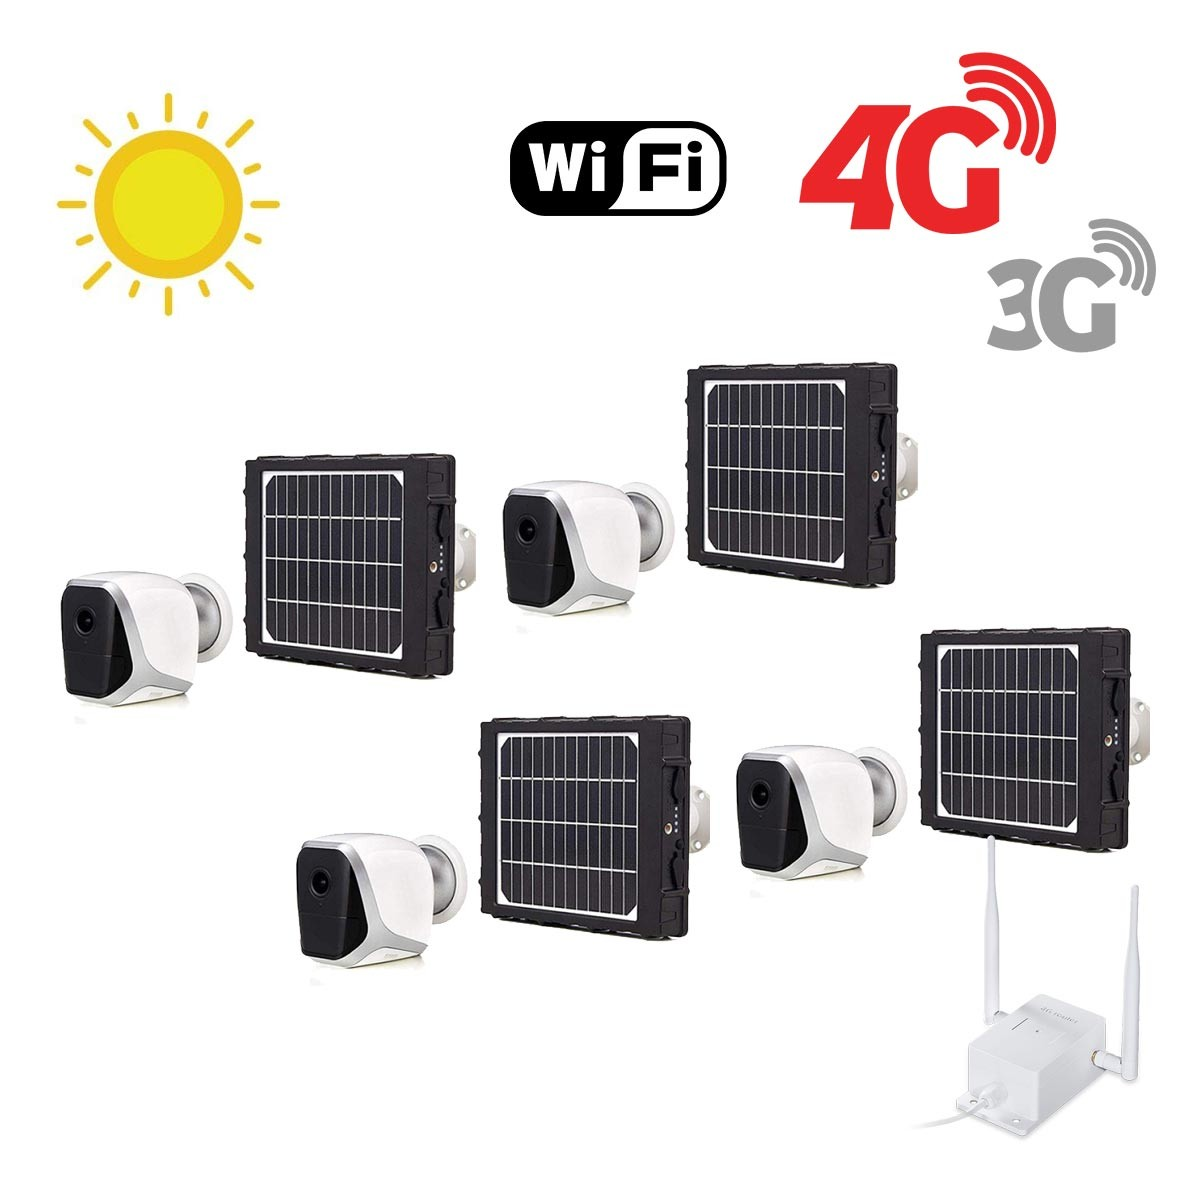 Kit de 4 smart caméras solaires Wifi HD 1080P waterproof Infrarouges accès à distance via iPhone Android 64 Go inclus avec routeur GSM 3G 4G WiFi